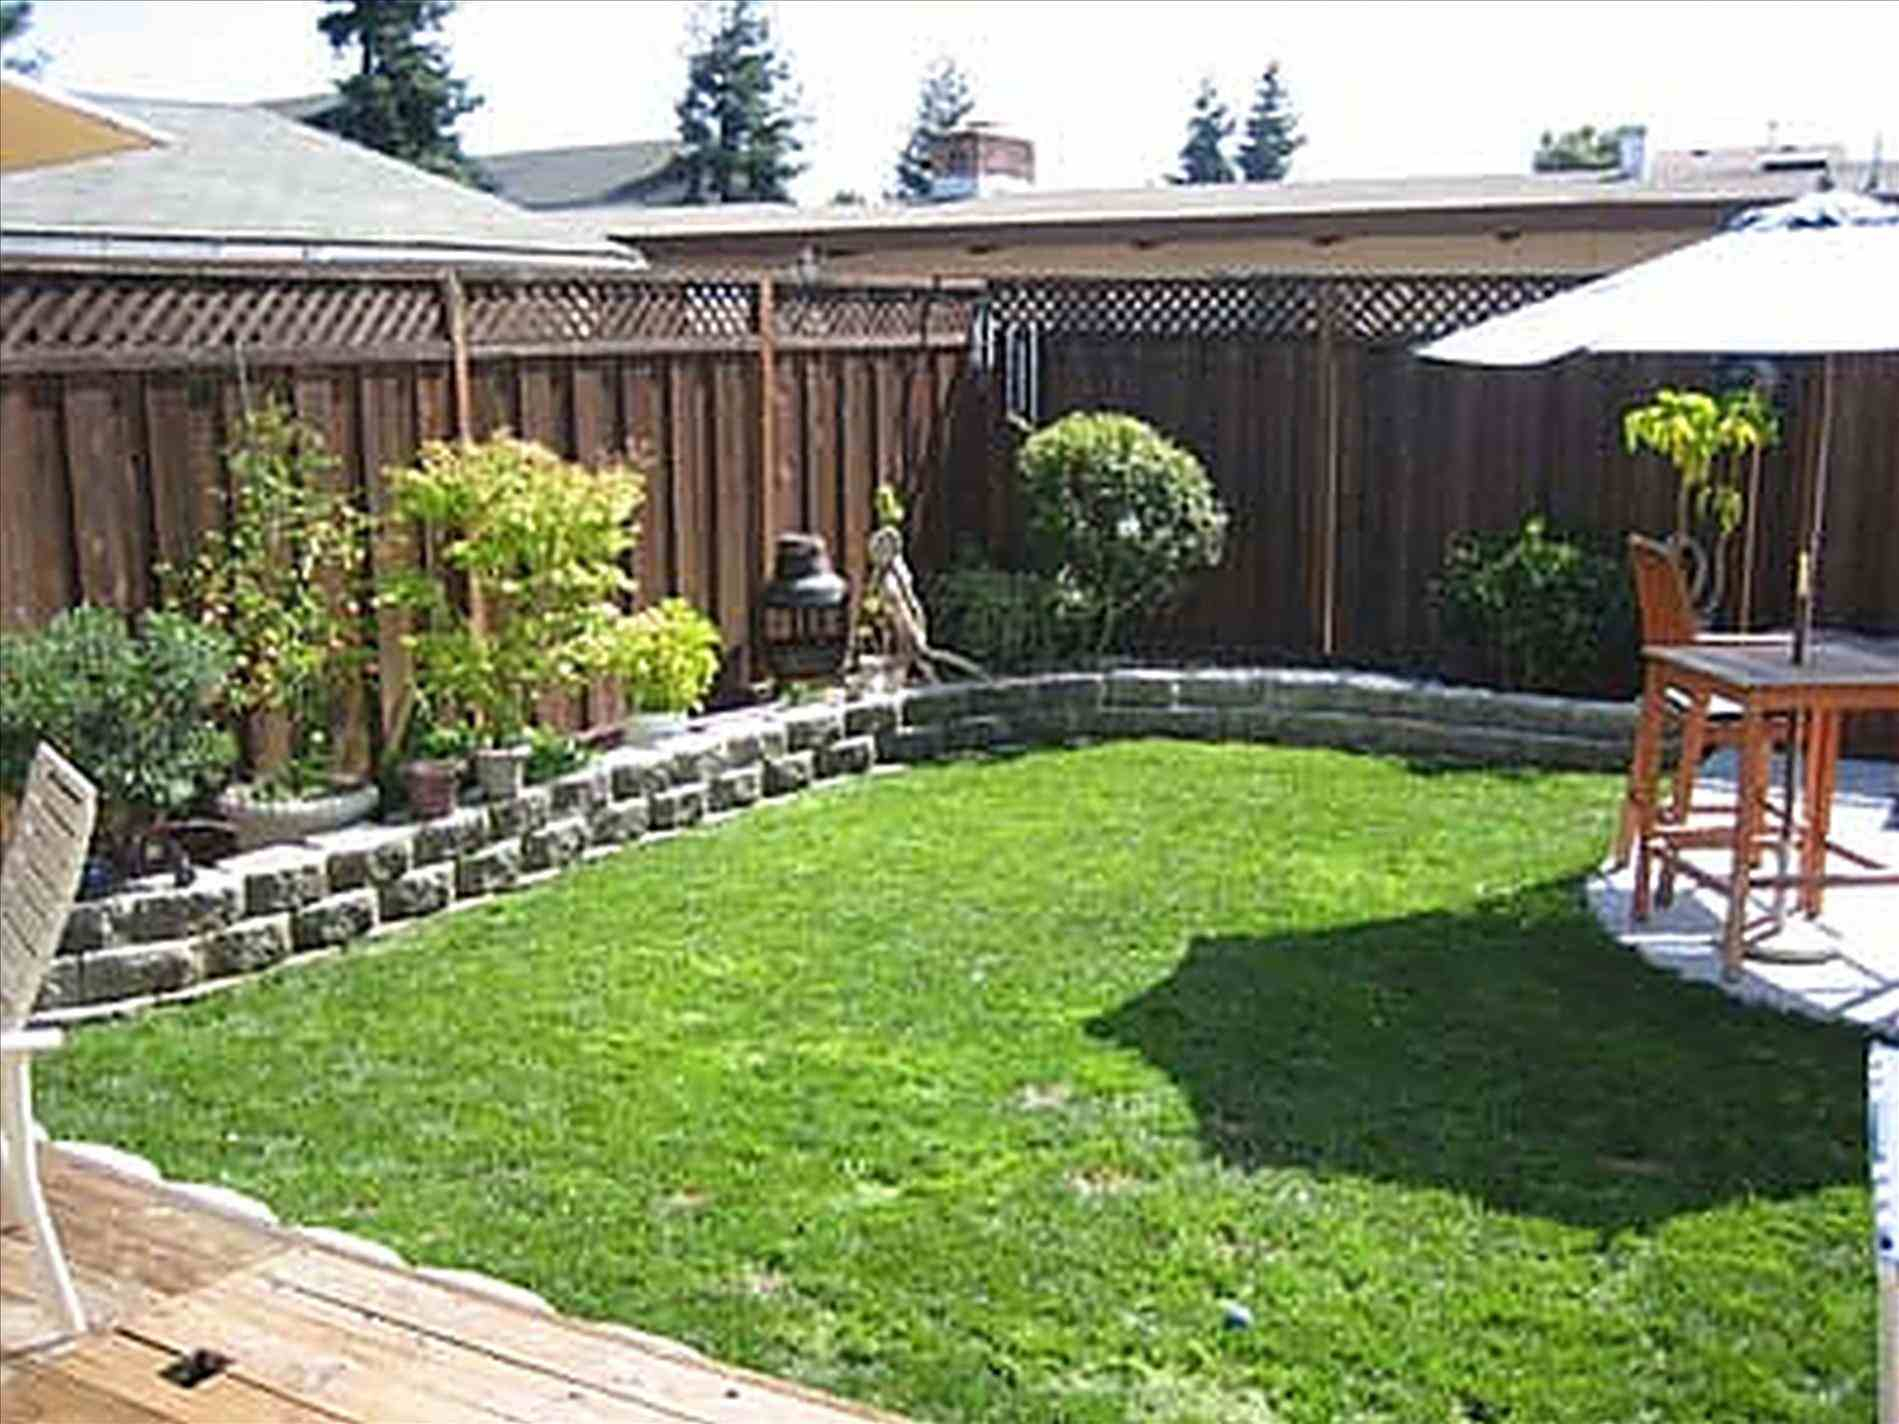 Colorado Backyard Landscaping Ideas Front Yard Landscape Fence within 10 Genius Ways How to Improve Colorado Backyard Landscaping Ideas